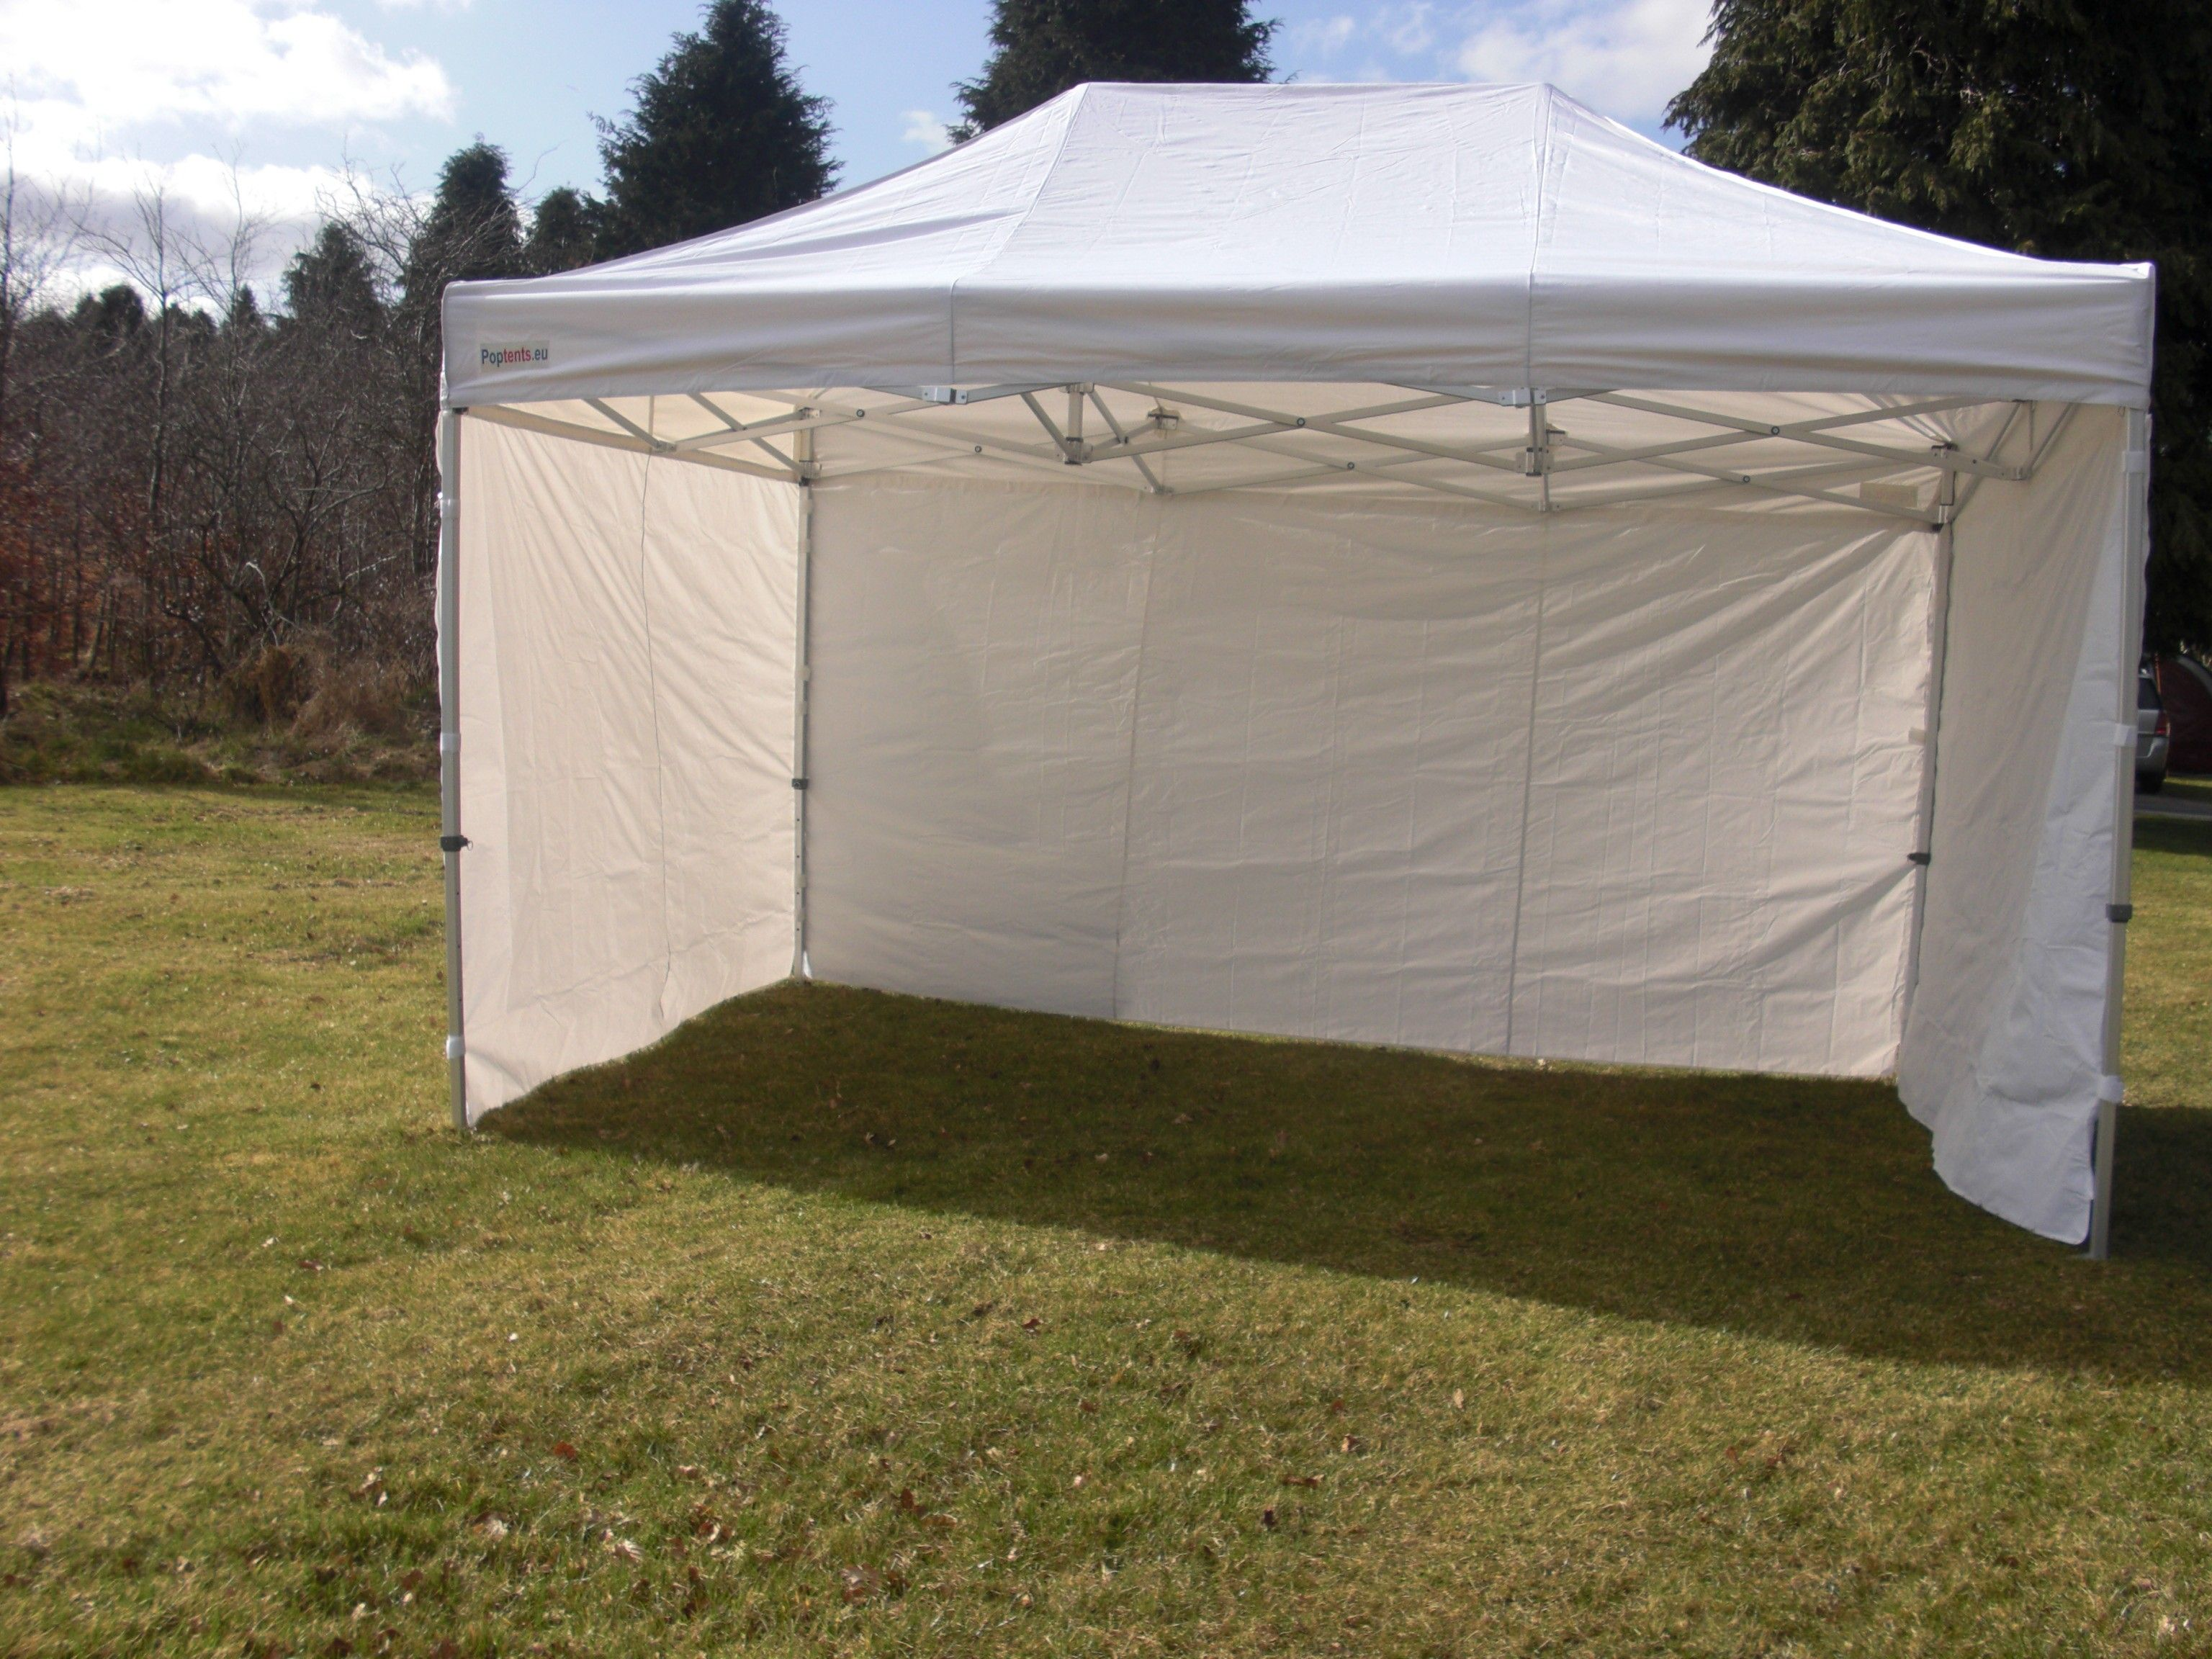 3m x 4.5m (10ft x 15ft) Extreme commerial grade White pop up tent & 3m x 4.5m (10ft x 15ft) Extreme commerial grade White pop up tent ...